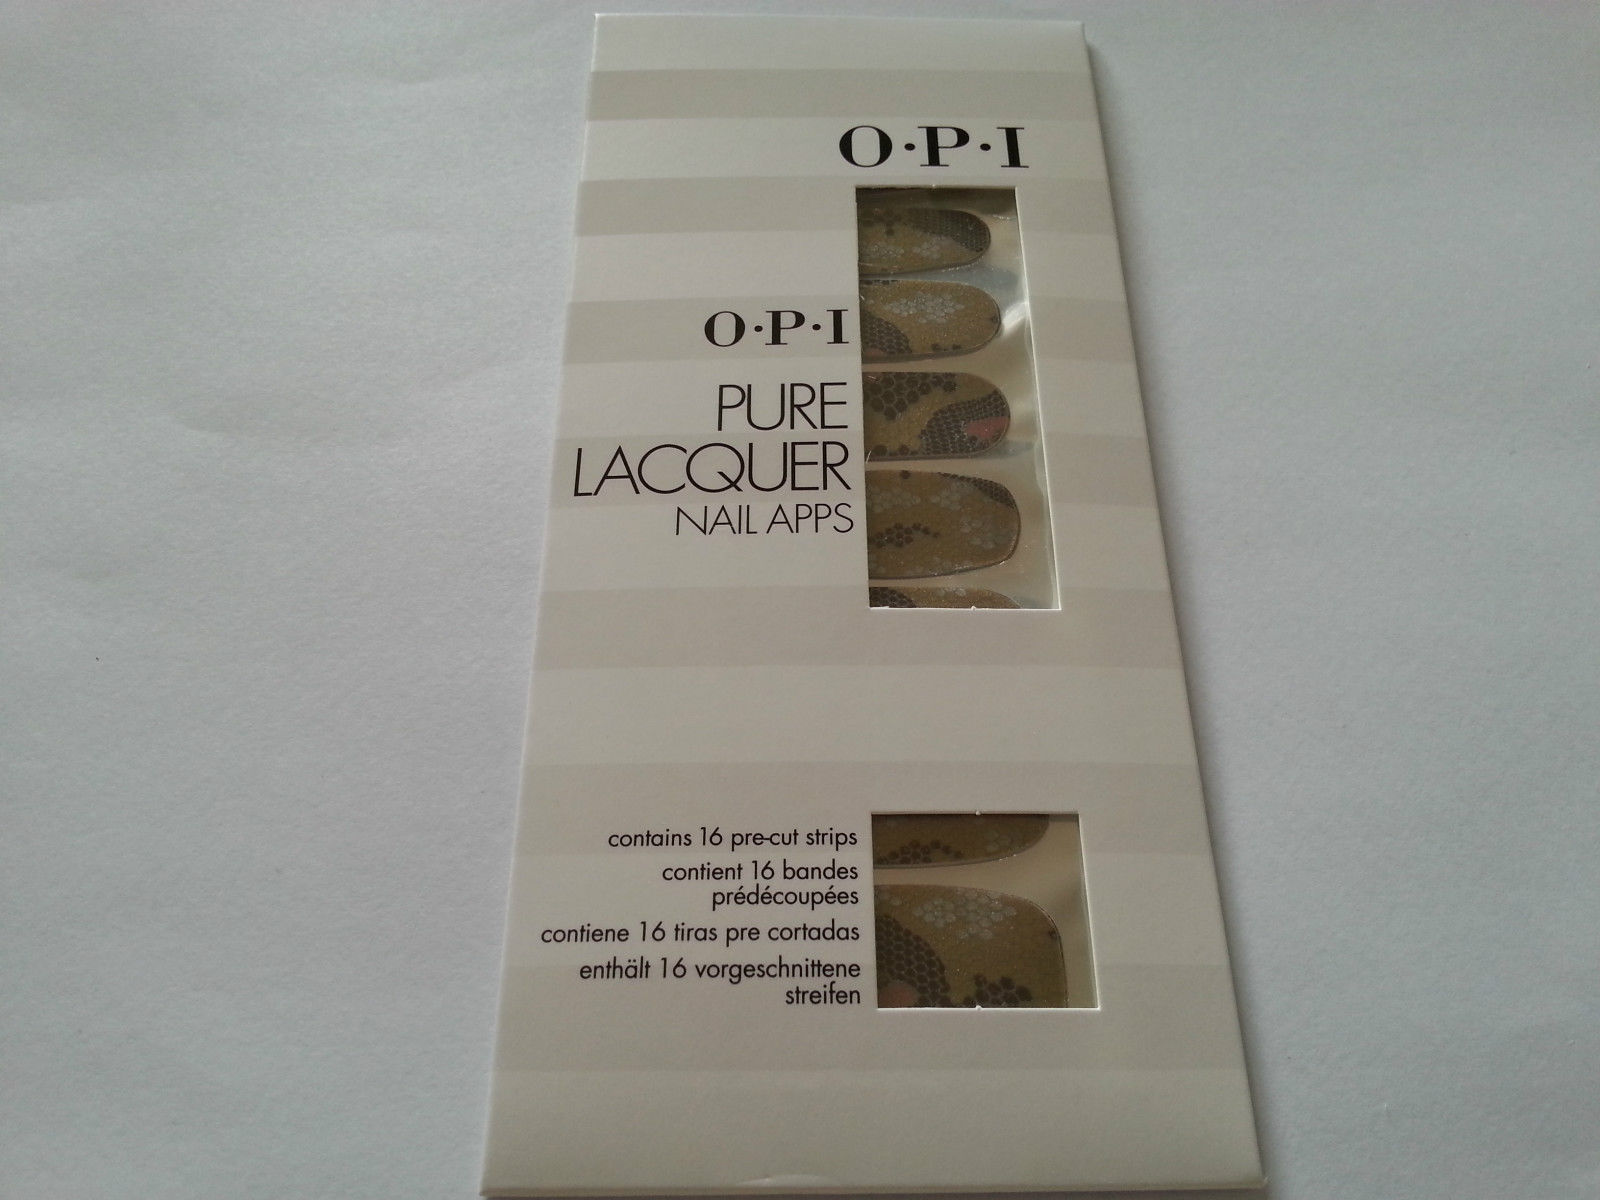 OPI PURE LACQUER NAIL APPS - 16 PRE-CUT STRIPS - AP106 REPTILE